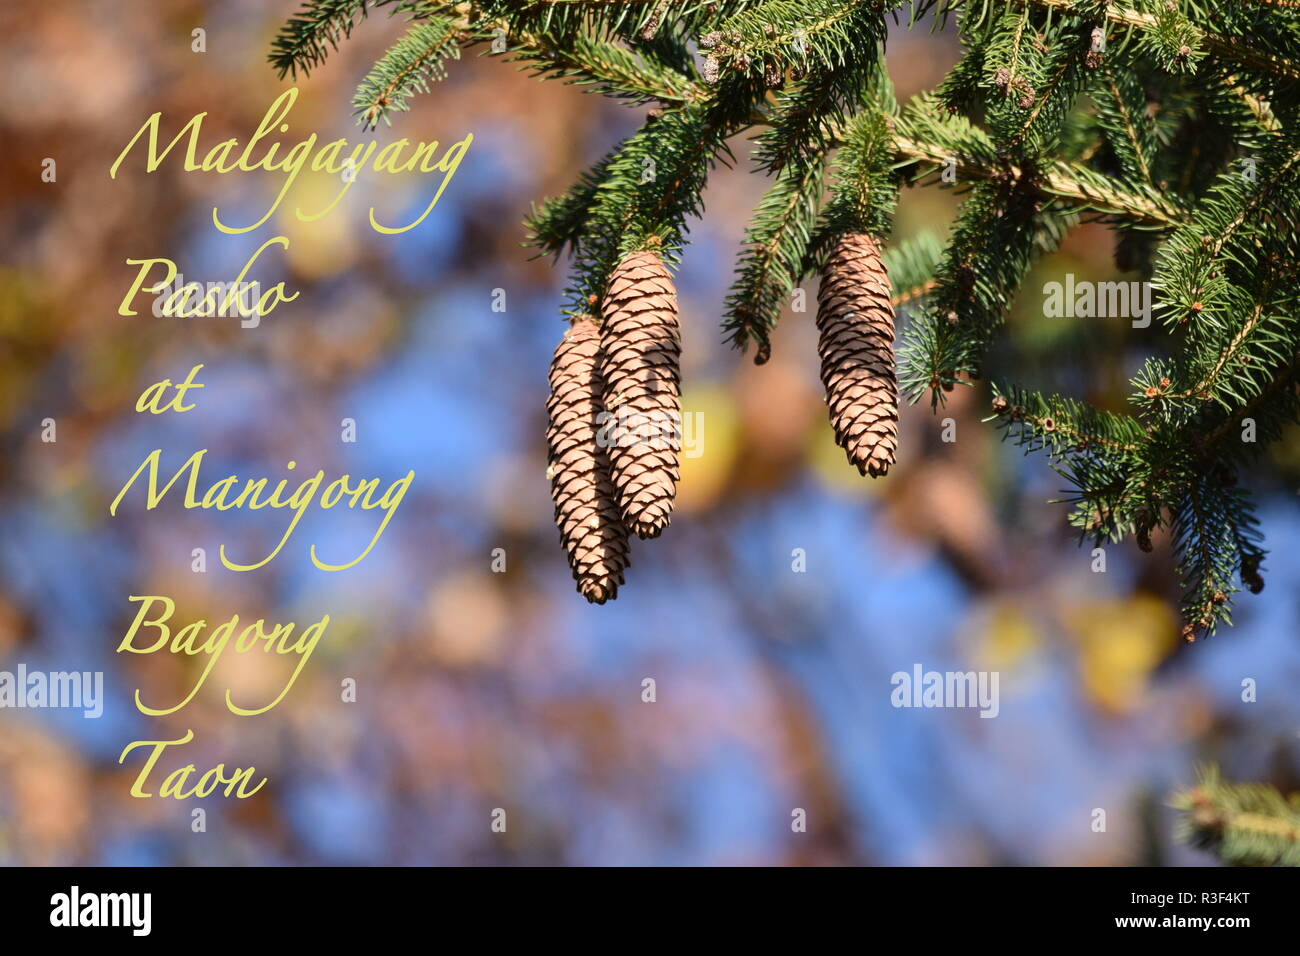 Close-up view of a mountain pine tree branch with fir cone hanging on branches, Christmas & New Year holiday's concept, Merry Xmas and Happy New Year. - Stock Image